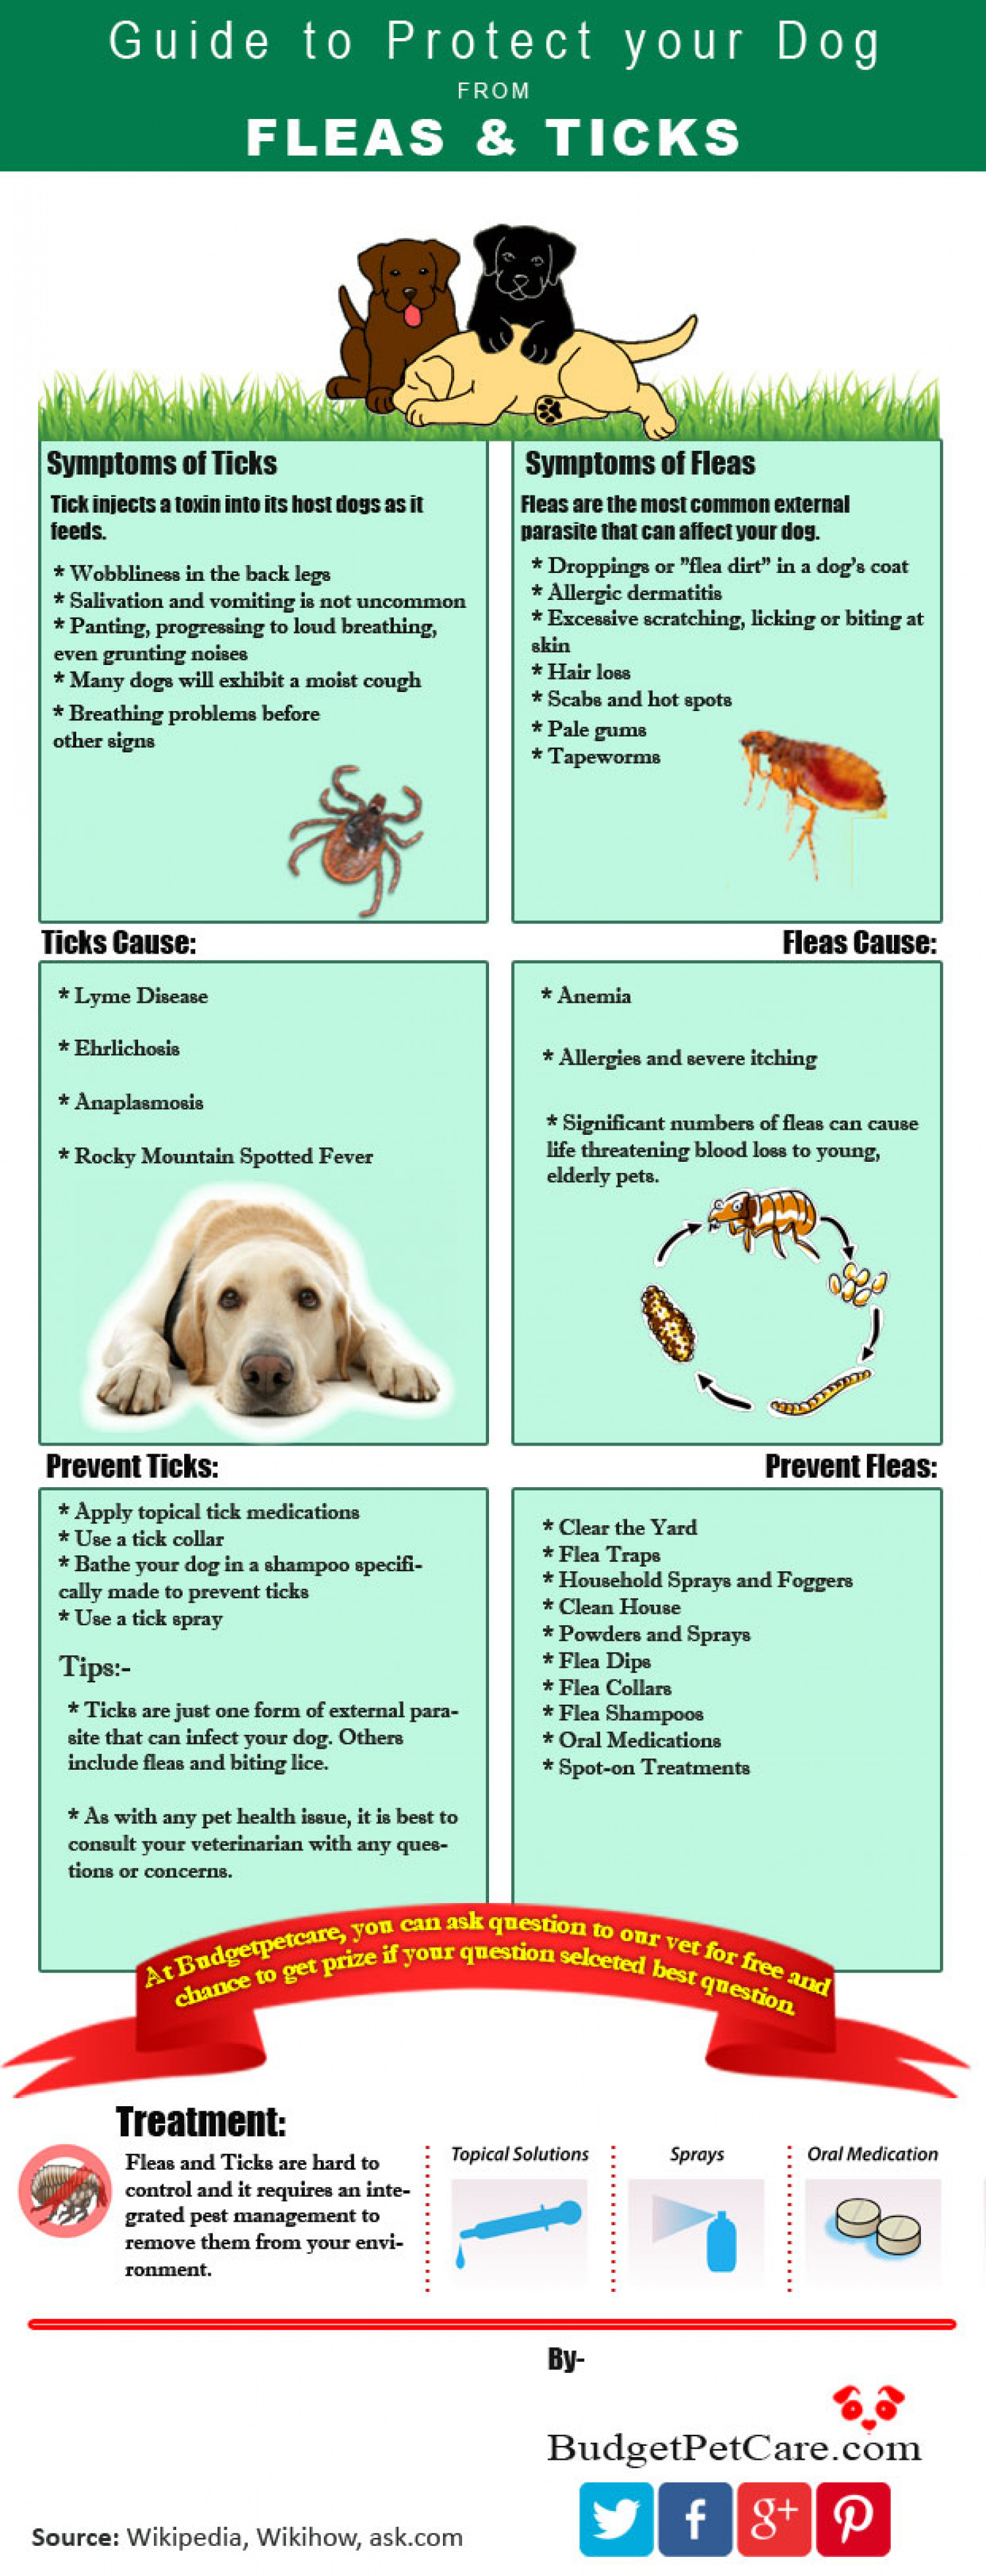 Guide to Protect your dog from Fleas and Ticks Infographic